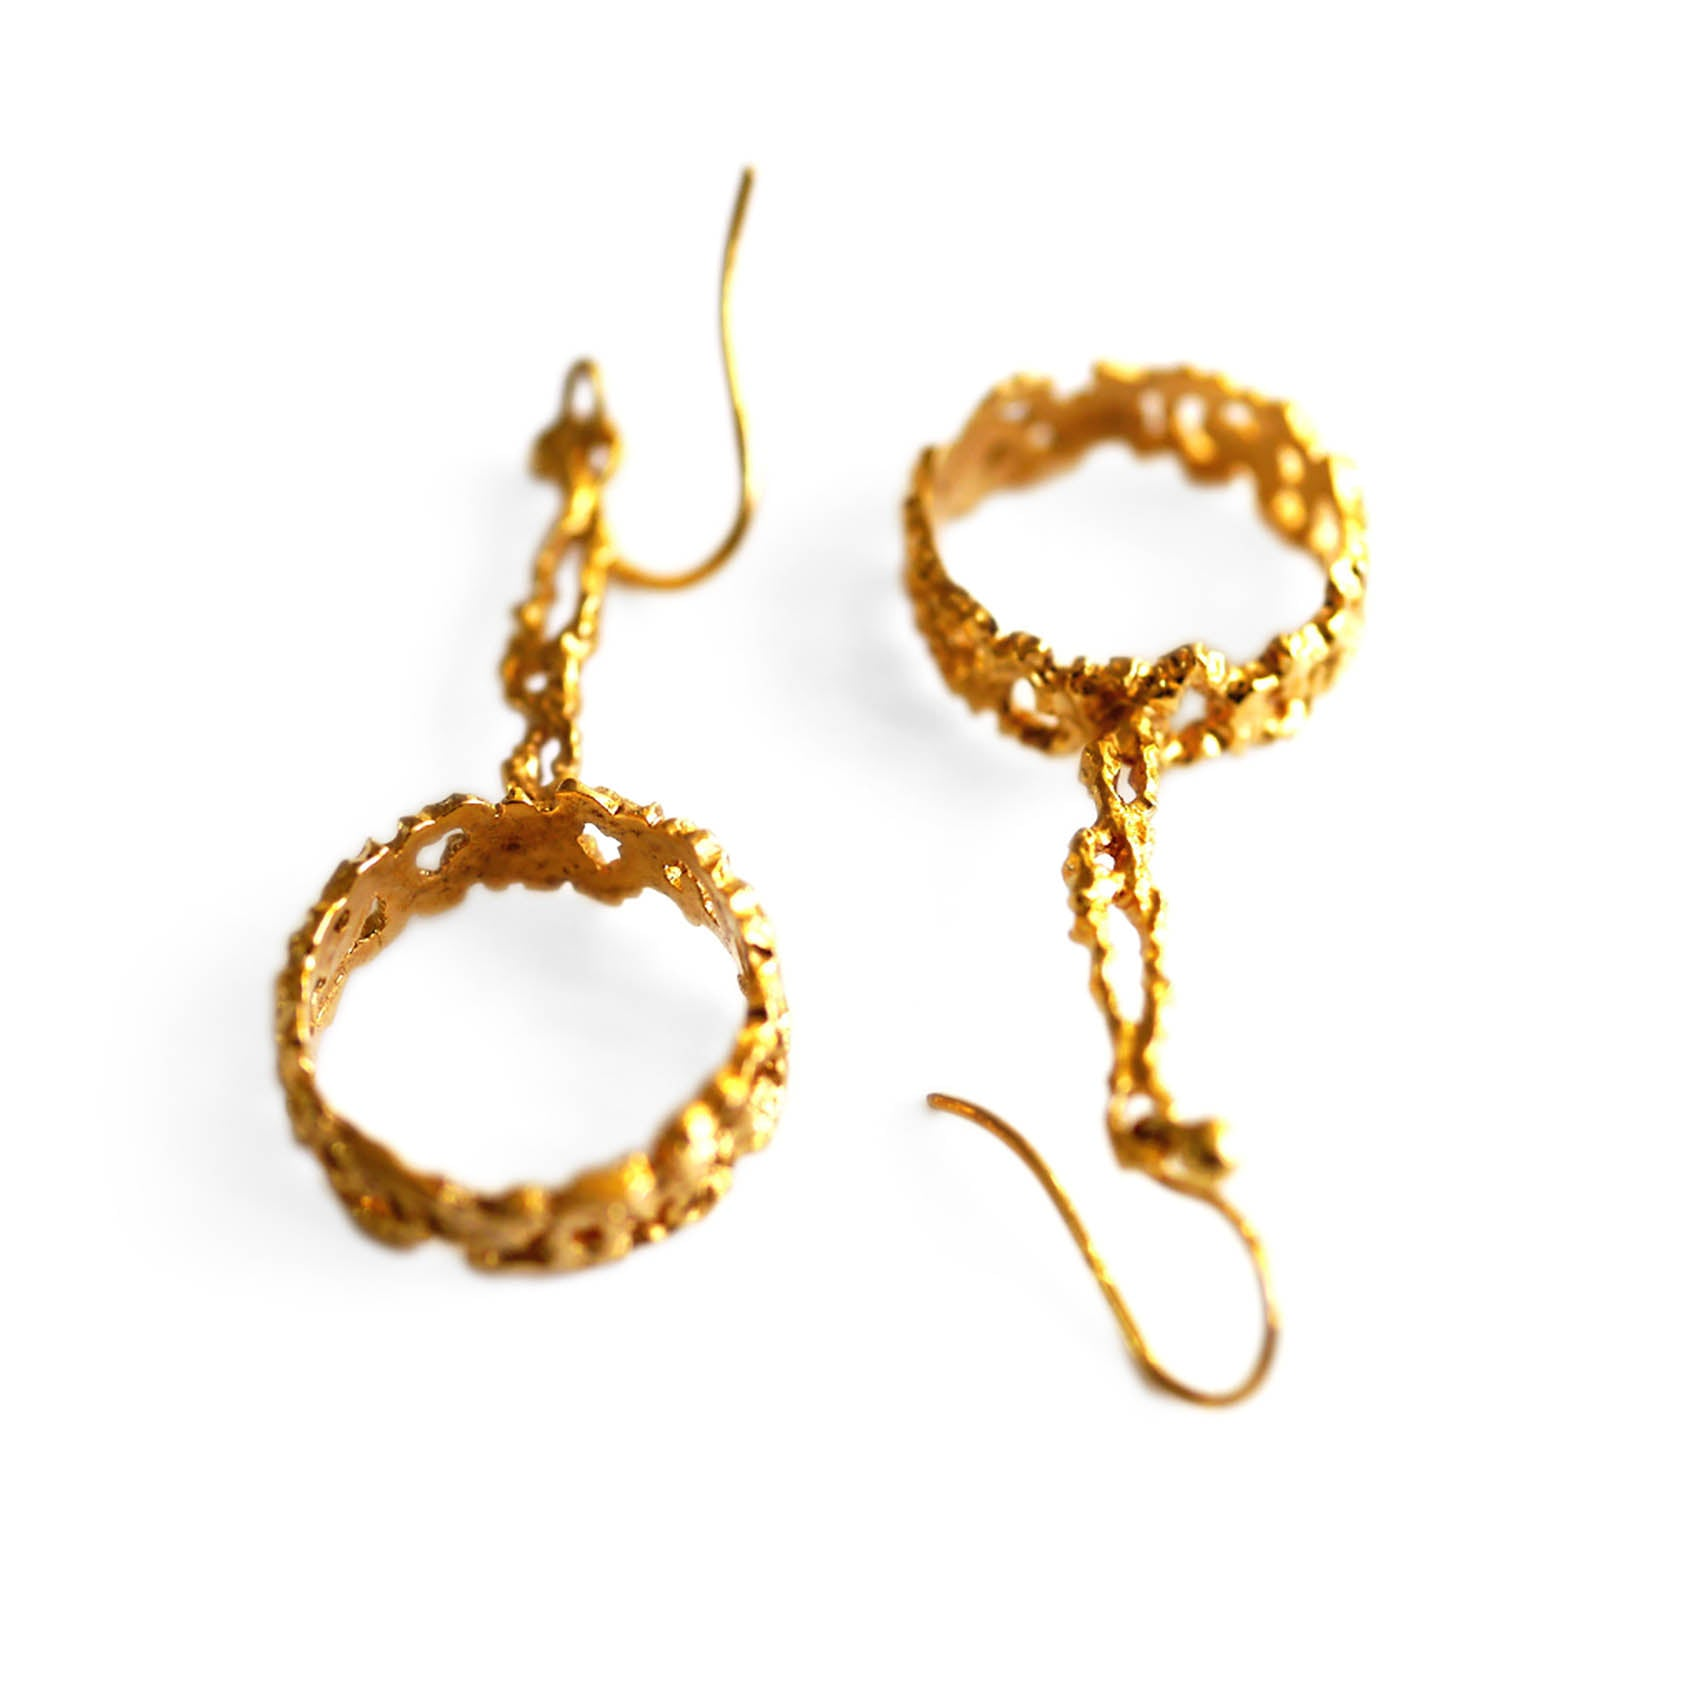 Gold Glorious Gold: The Inner Circle Earrings